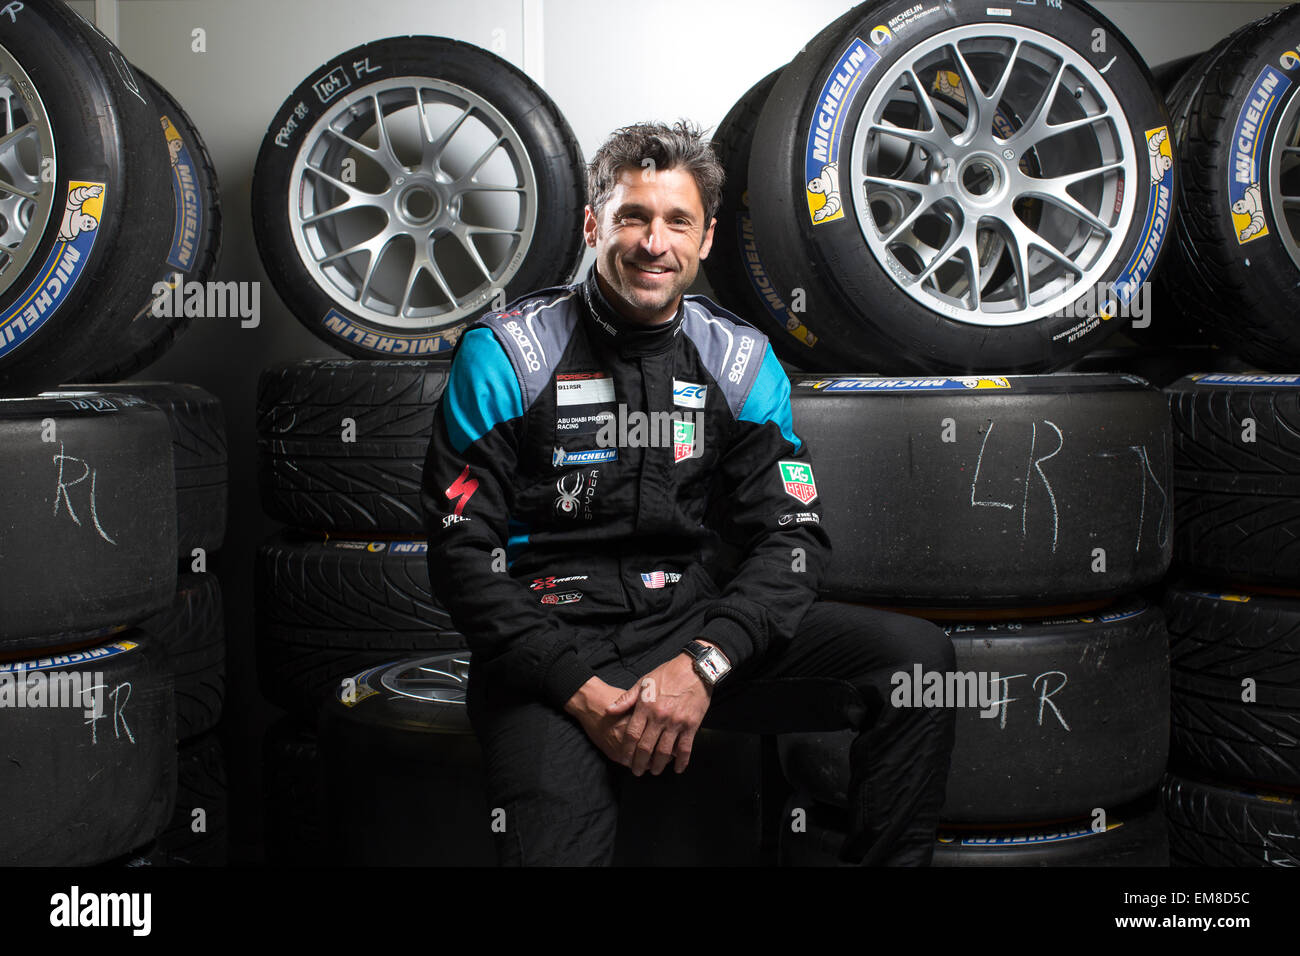 Patrick Dempsey American Actor And Amateur Racing Driver With Stock